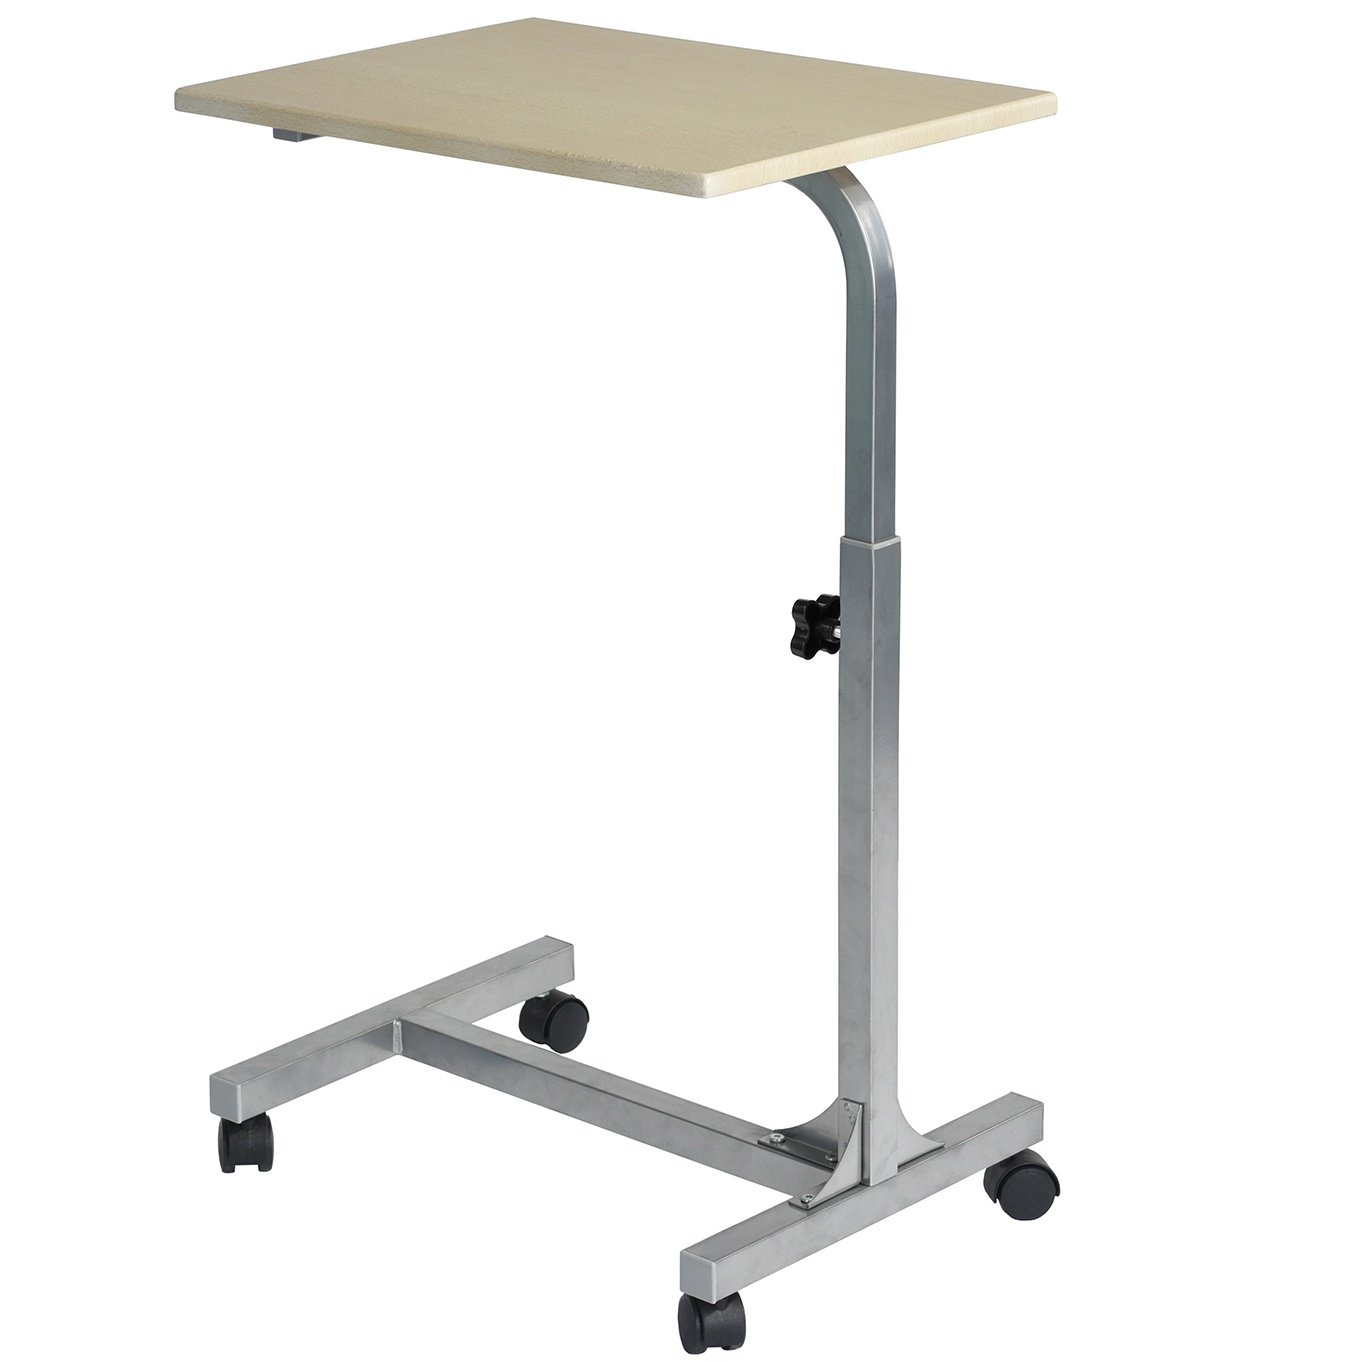 Coavas Laptop Desk Medical Adjustable Height Overbed Table Multi-purpose Portable Computer Desk Bed Sofa Side Table with Wheels - Beech